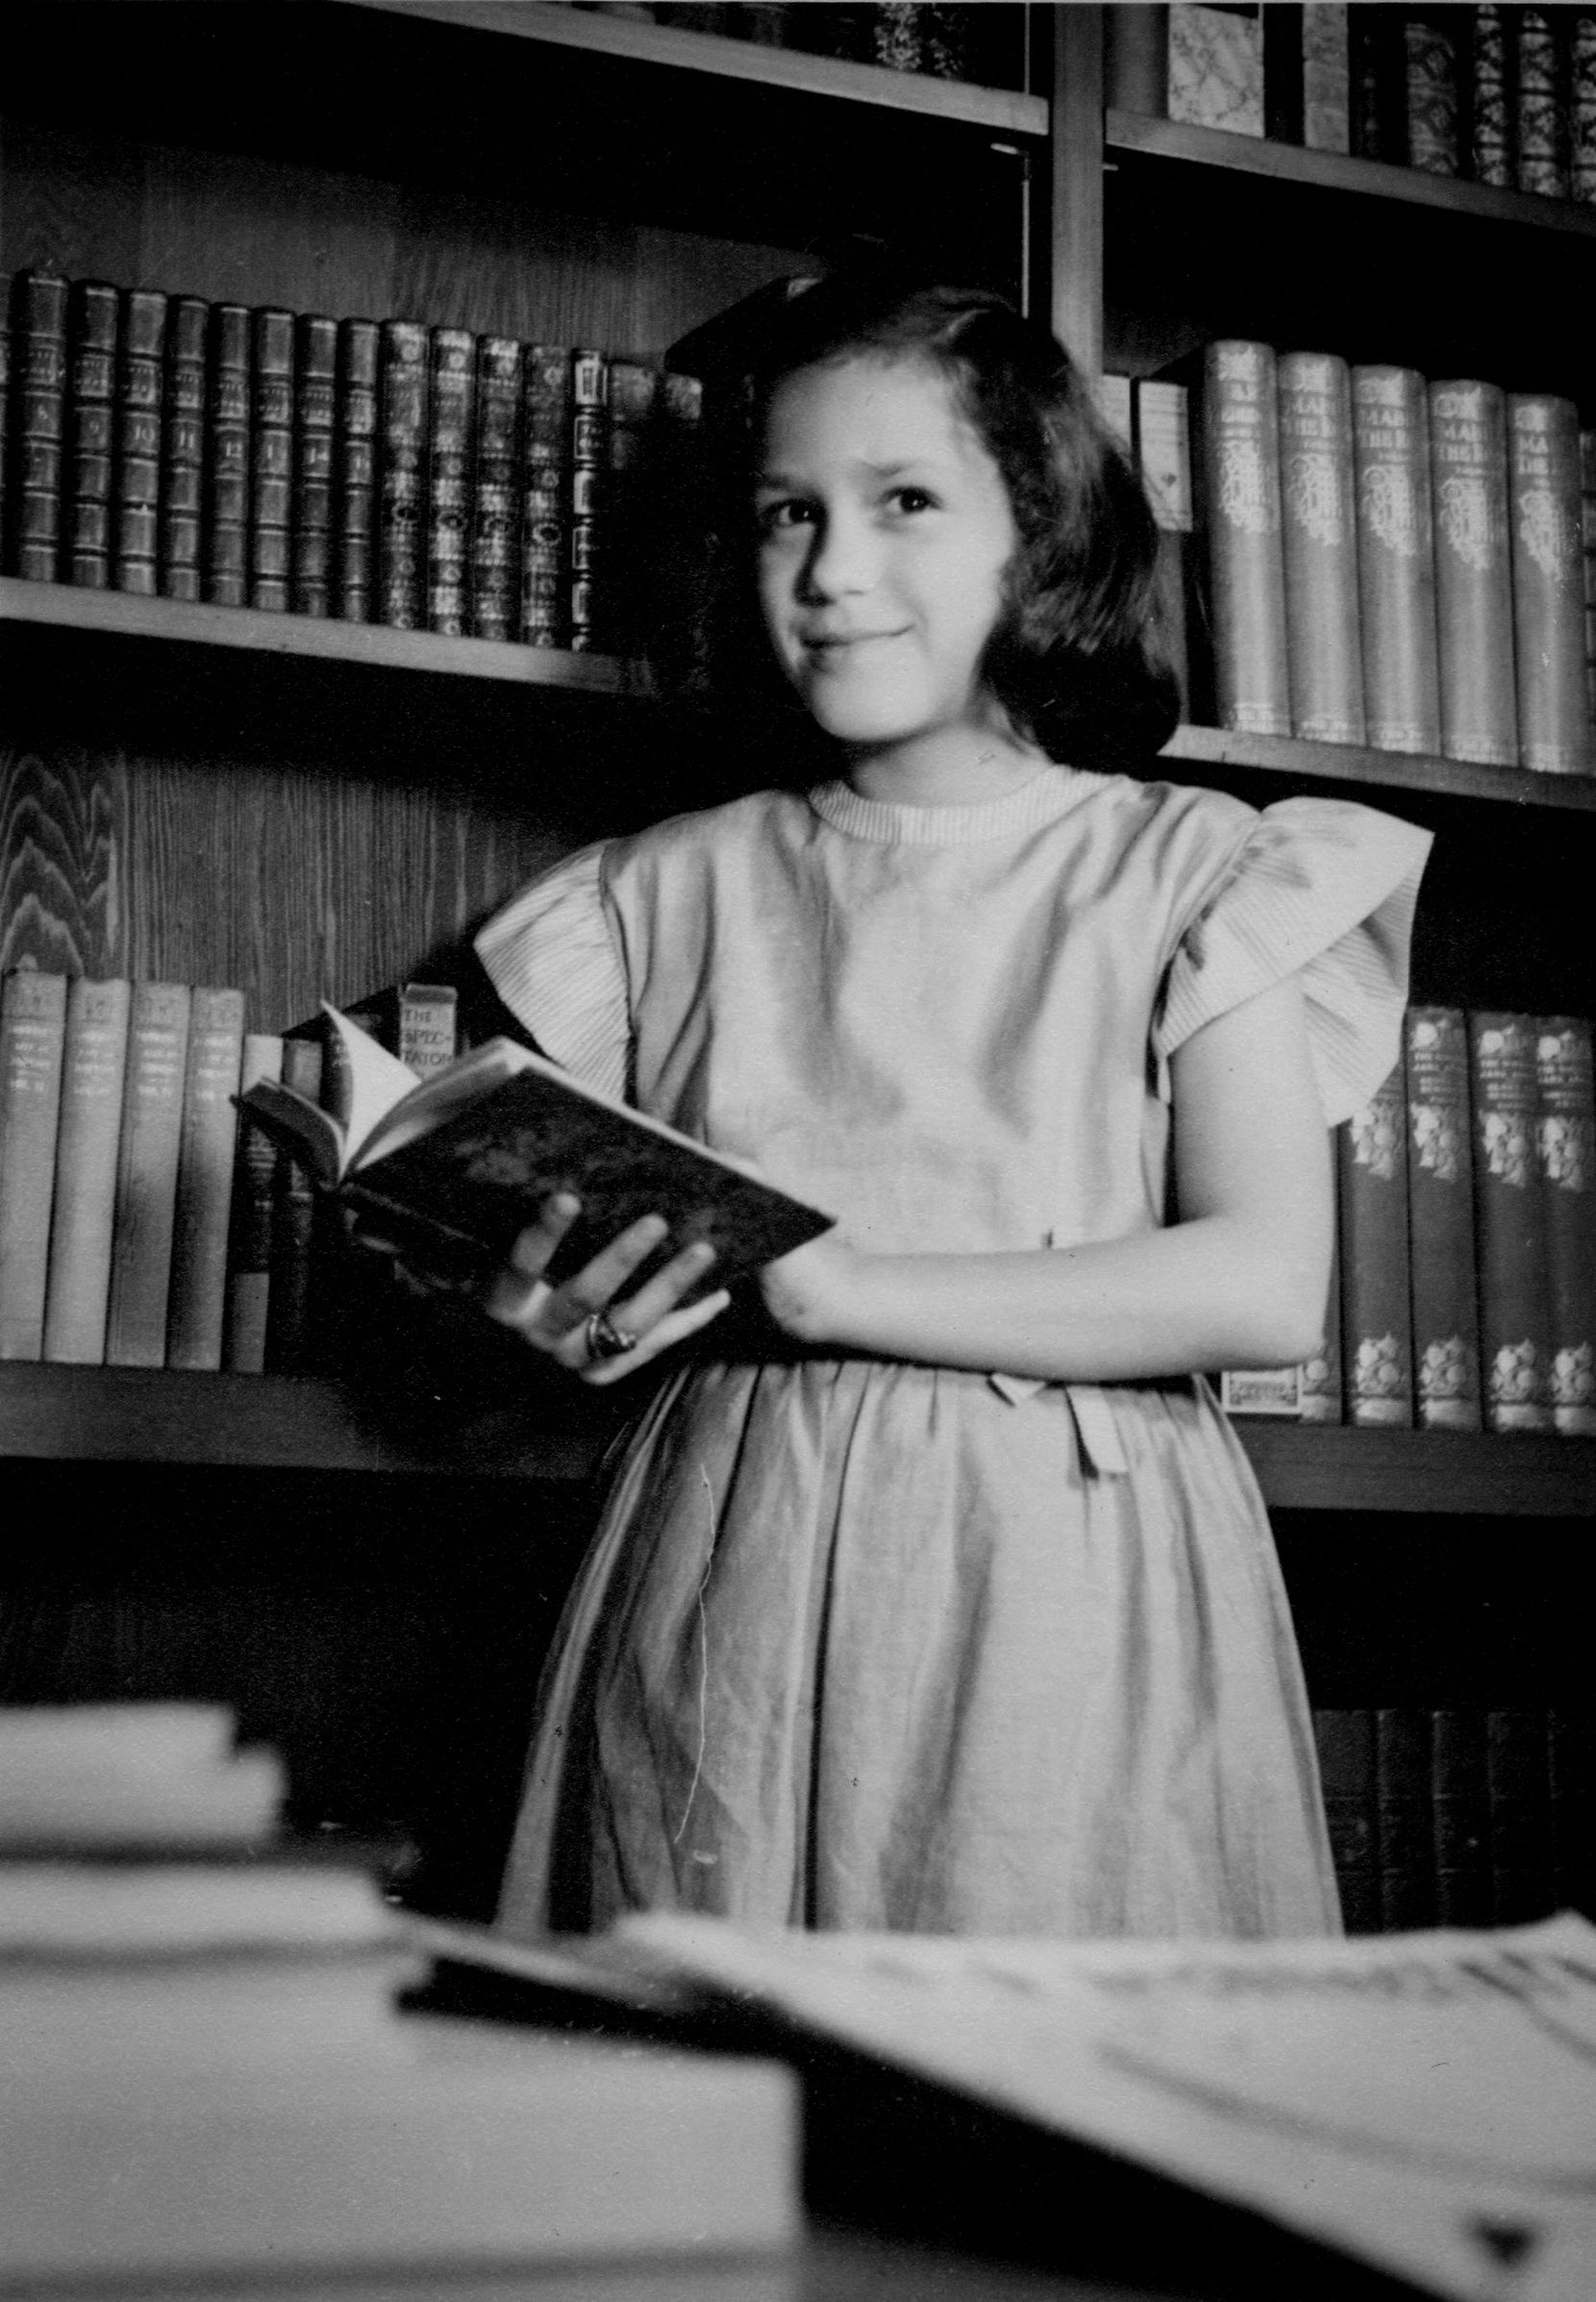 The author, Jerrie Marcus Smith, photographed at 10 years old in her father's library in her childhood home in Dallas. Photograph by Stanley Marcus.